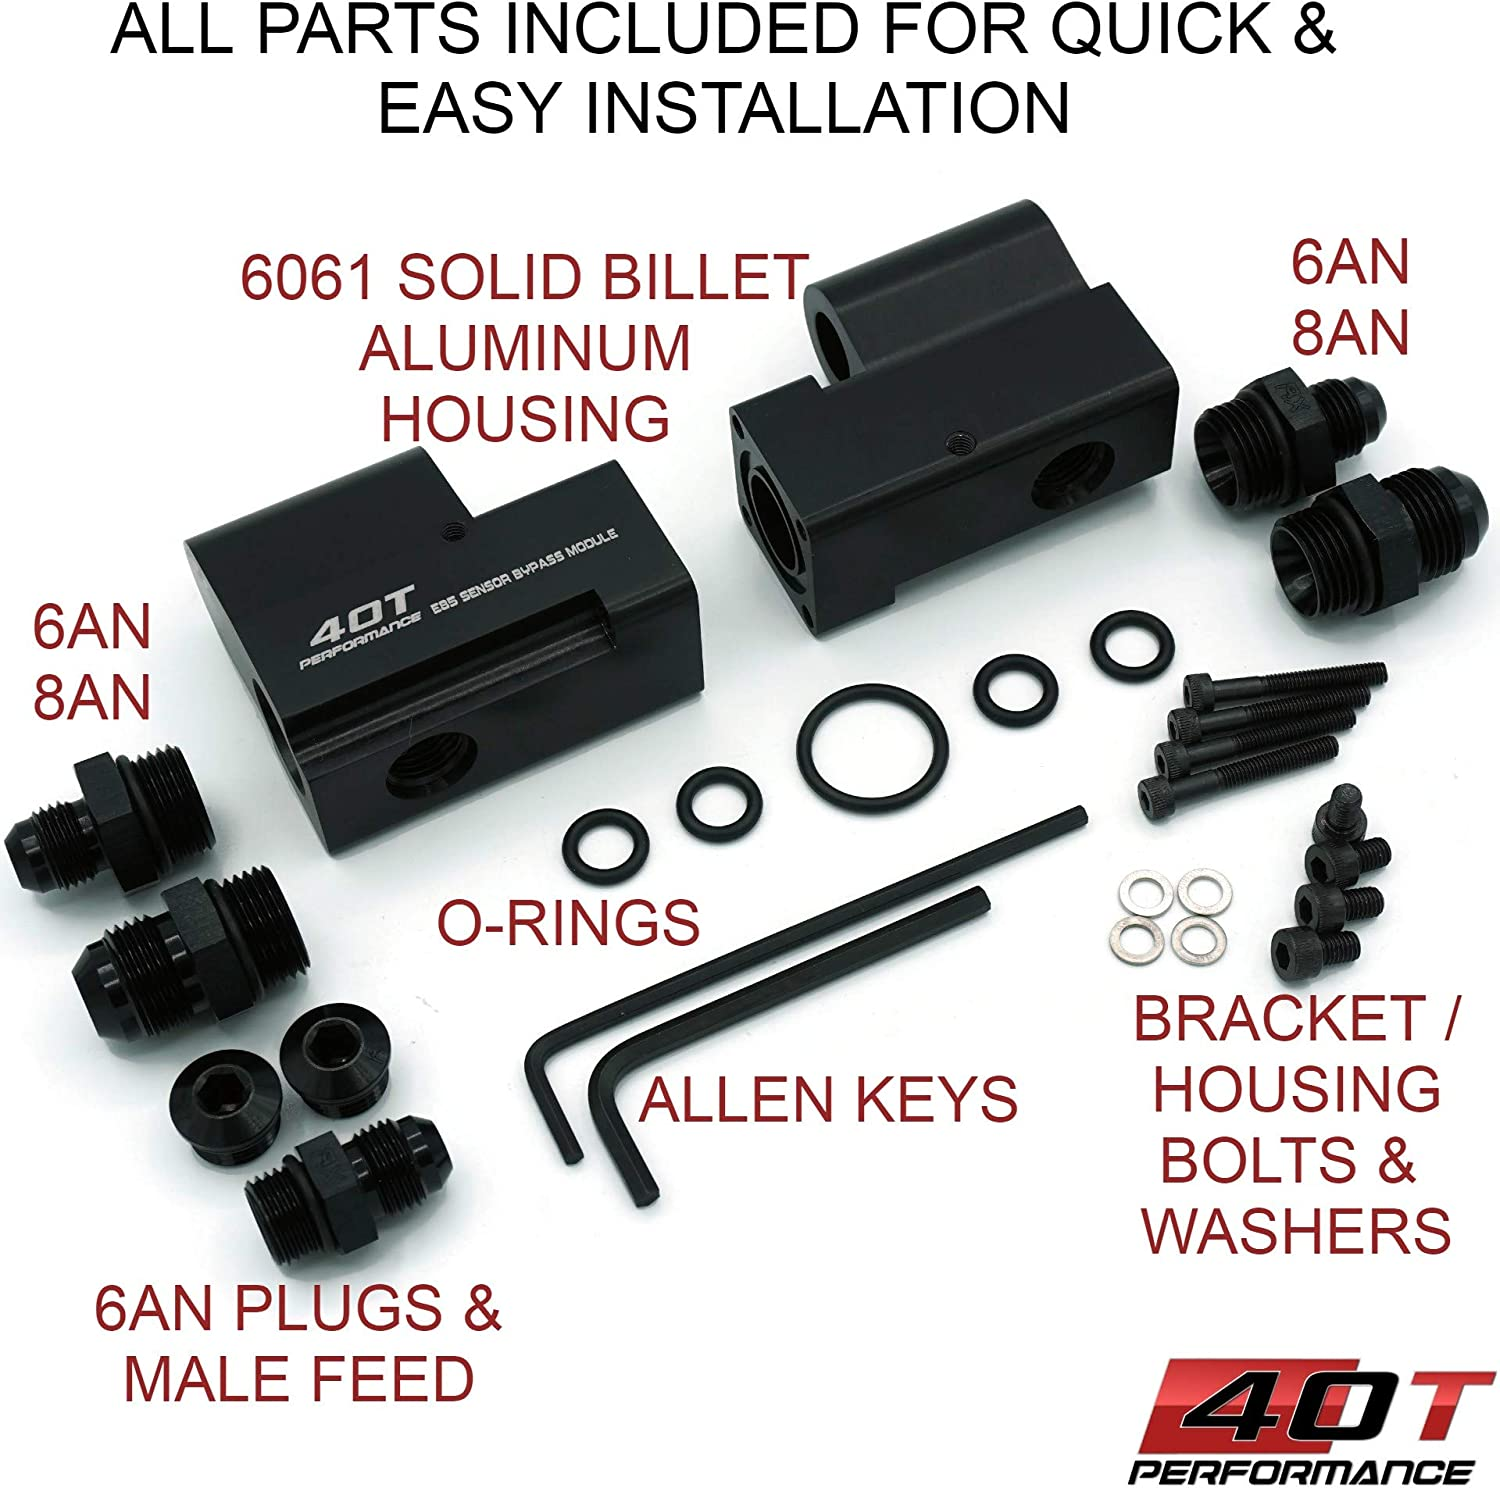 40T-Performance E85 Flex Fuel Sensor Mount//Bracket Bypass Module Solid 6061 Billet 6AN and 8AN Fittings Included Robust Mount For FULL FLOW from your E85 Flex Fuel Sensor to Fuel Rails